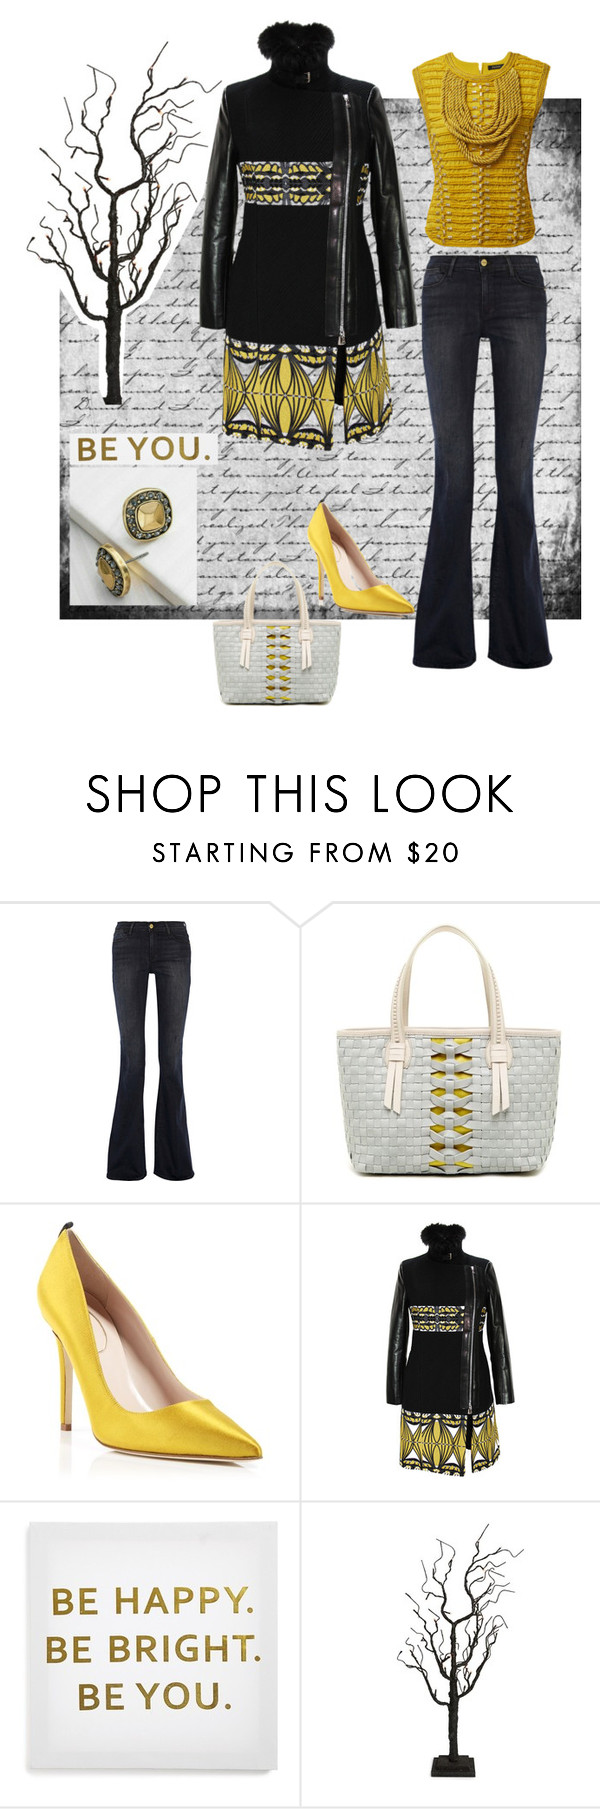 """be you"" by missgiven ❤ liked on Polyvore featuring Balmain, Frame Denim, Cole Haan, SJP, Etro, Ankit and Fantastic Craft"